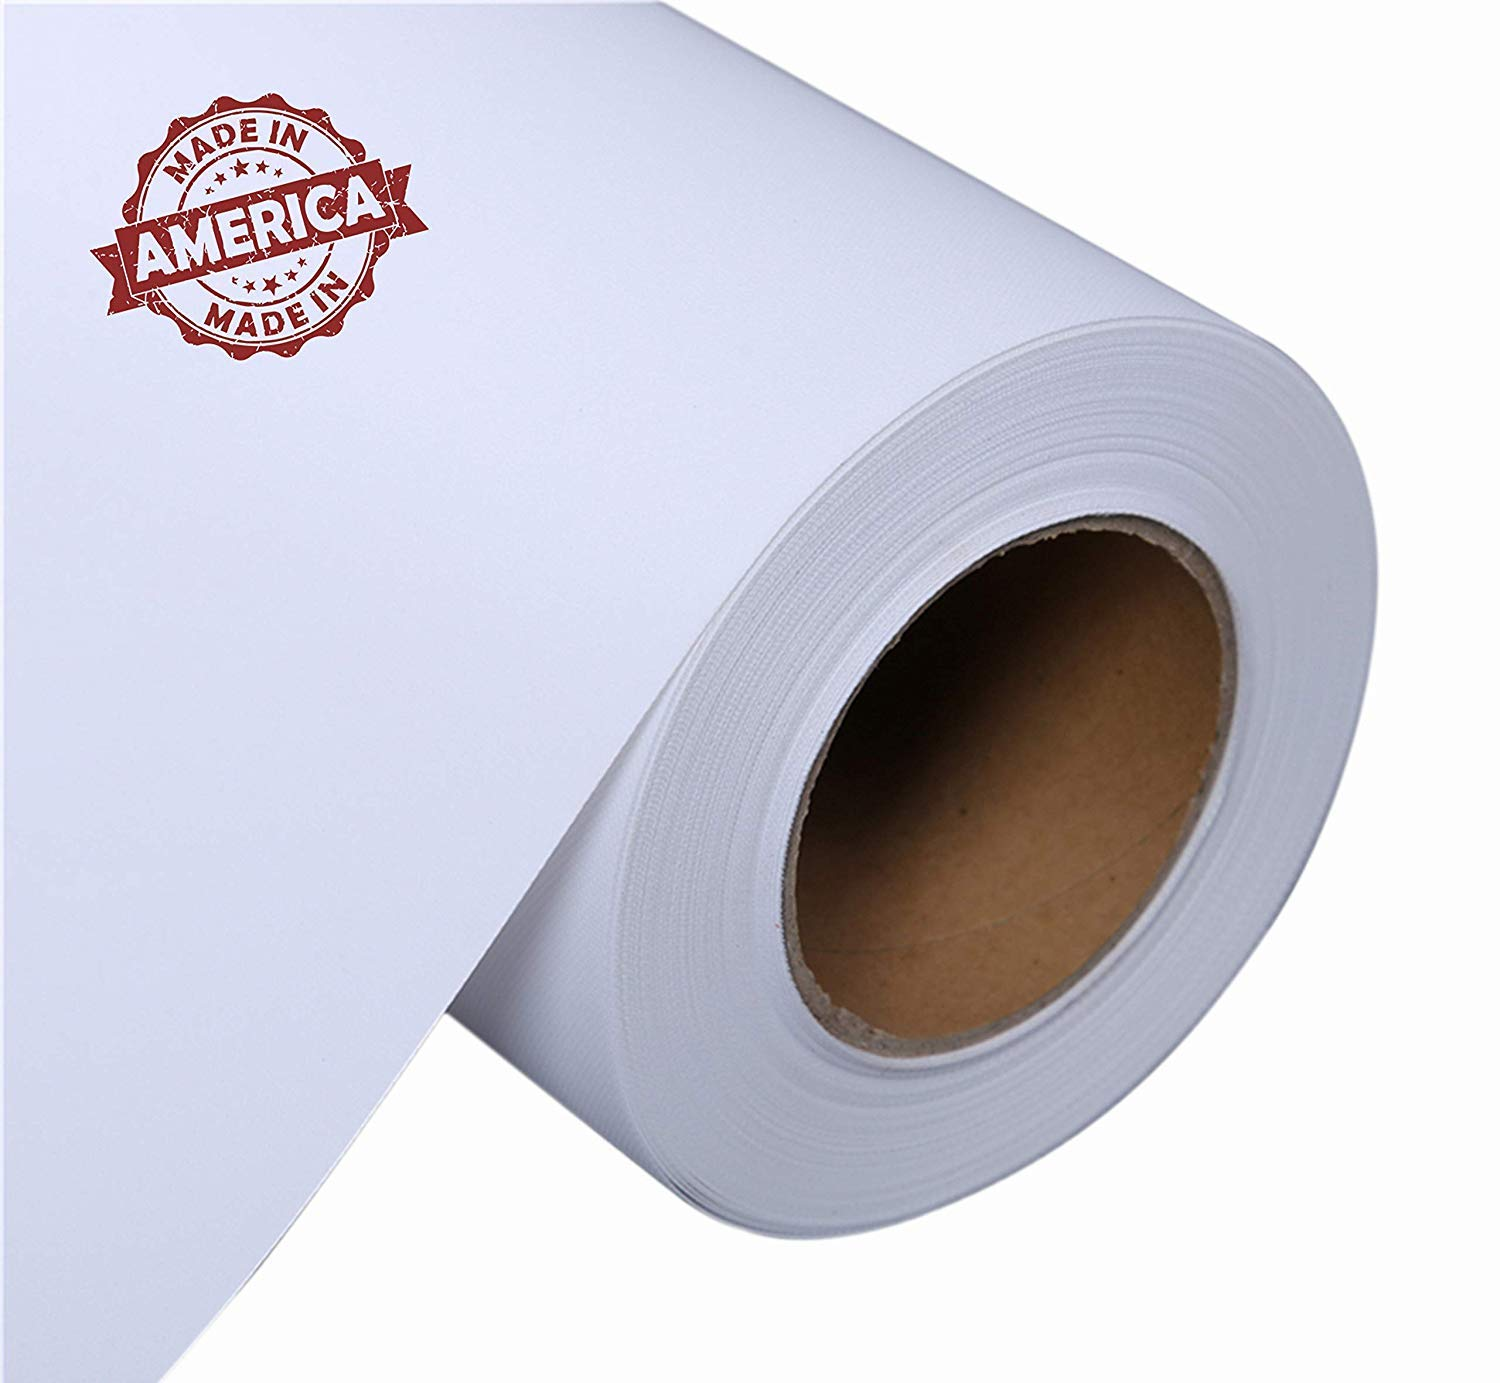 Canvas Roll for Wide Format Inkjet Printer, Polyester Paper Roll for Epson Canon HP Plotter 300gsm, 36'' x 100' (90cm x 30m) by Prixas Print